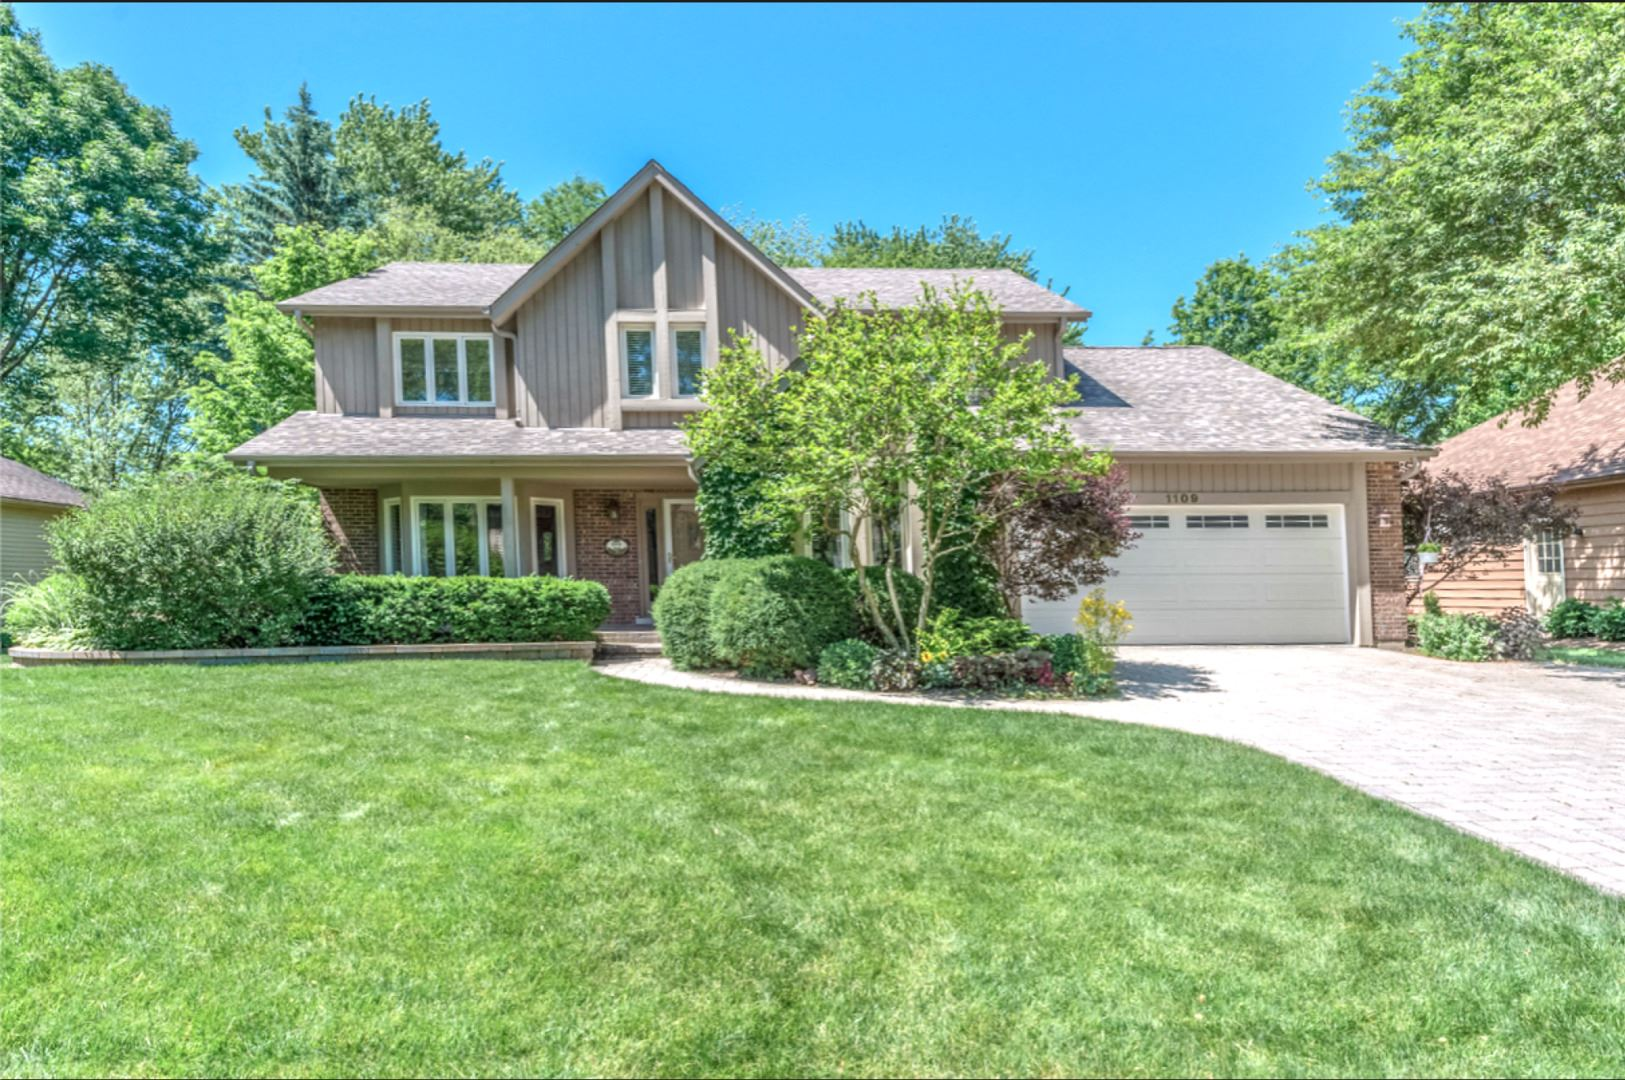 1109 Johnson Drive, Naperville, IL 60540 - #: 10744377